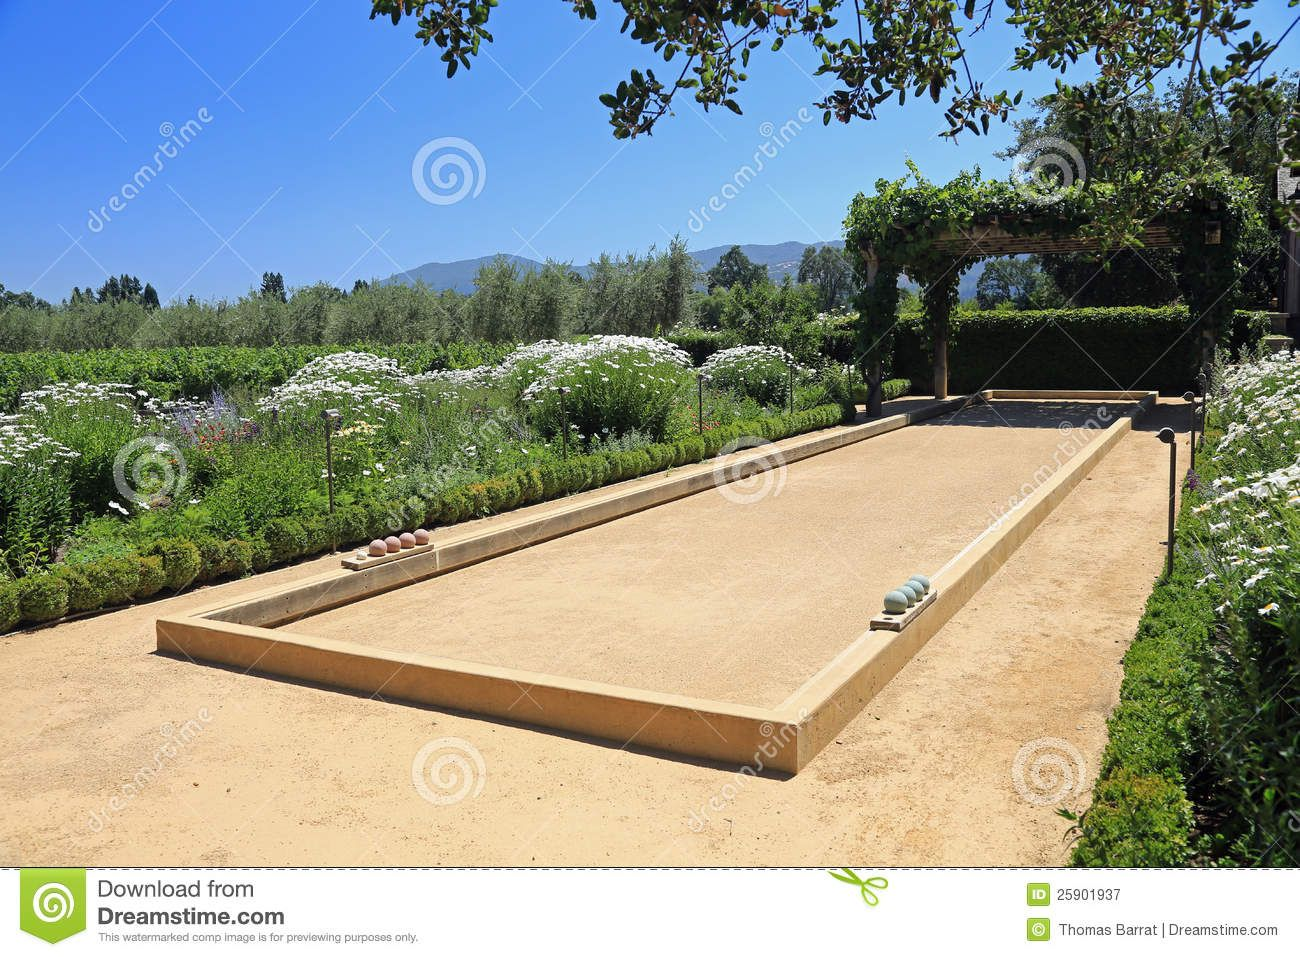 Image Result For Bocce Ball Court Bocce Ball Court Outdoor